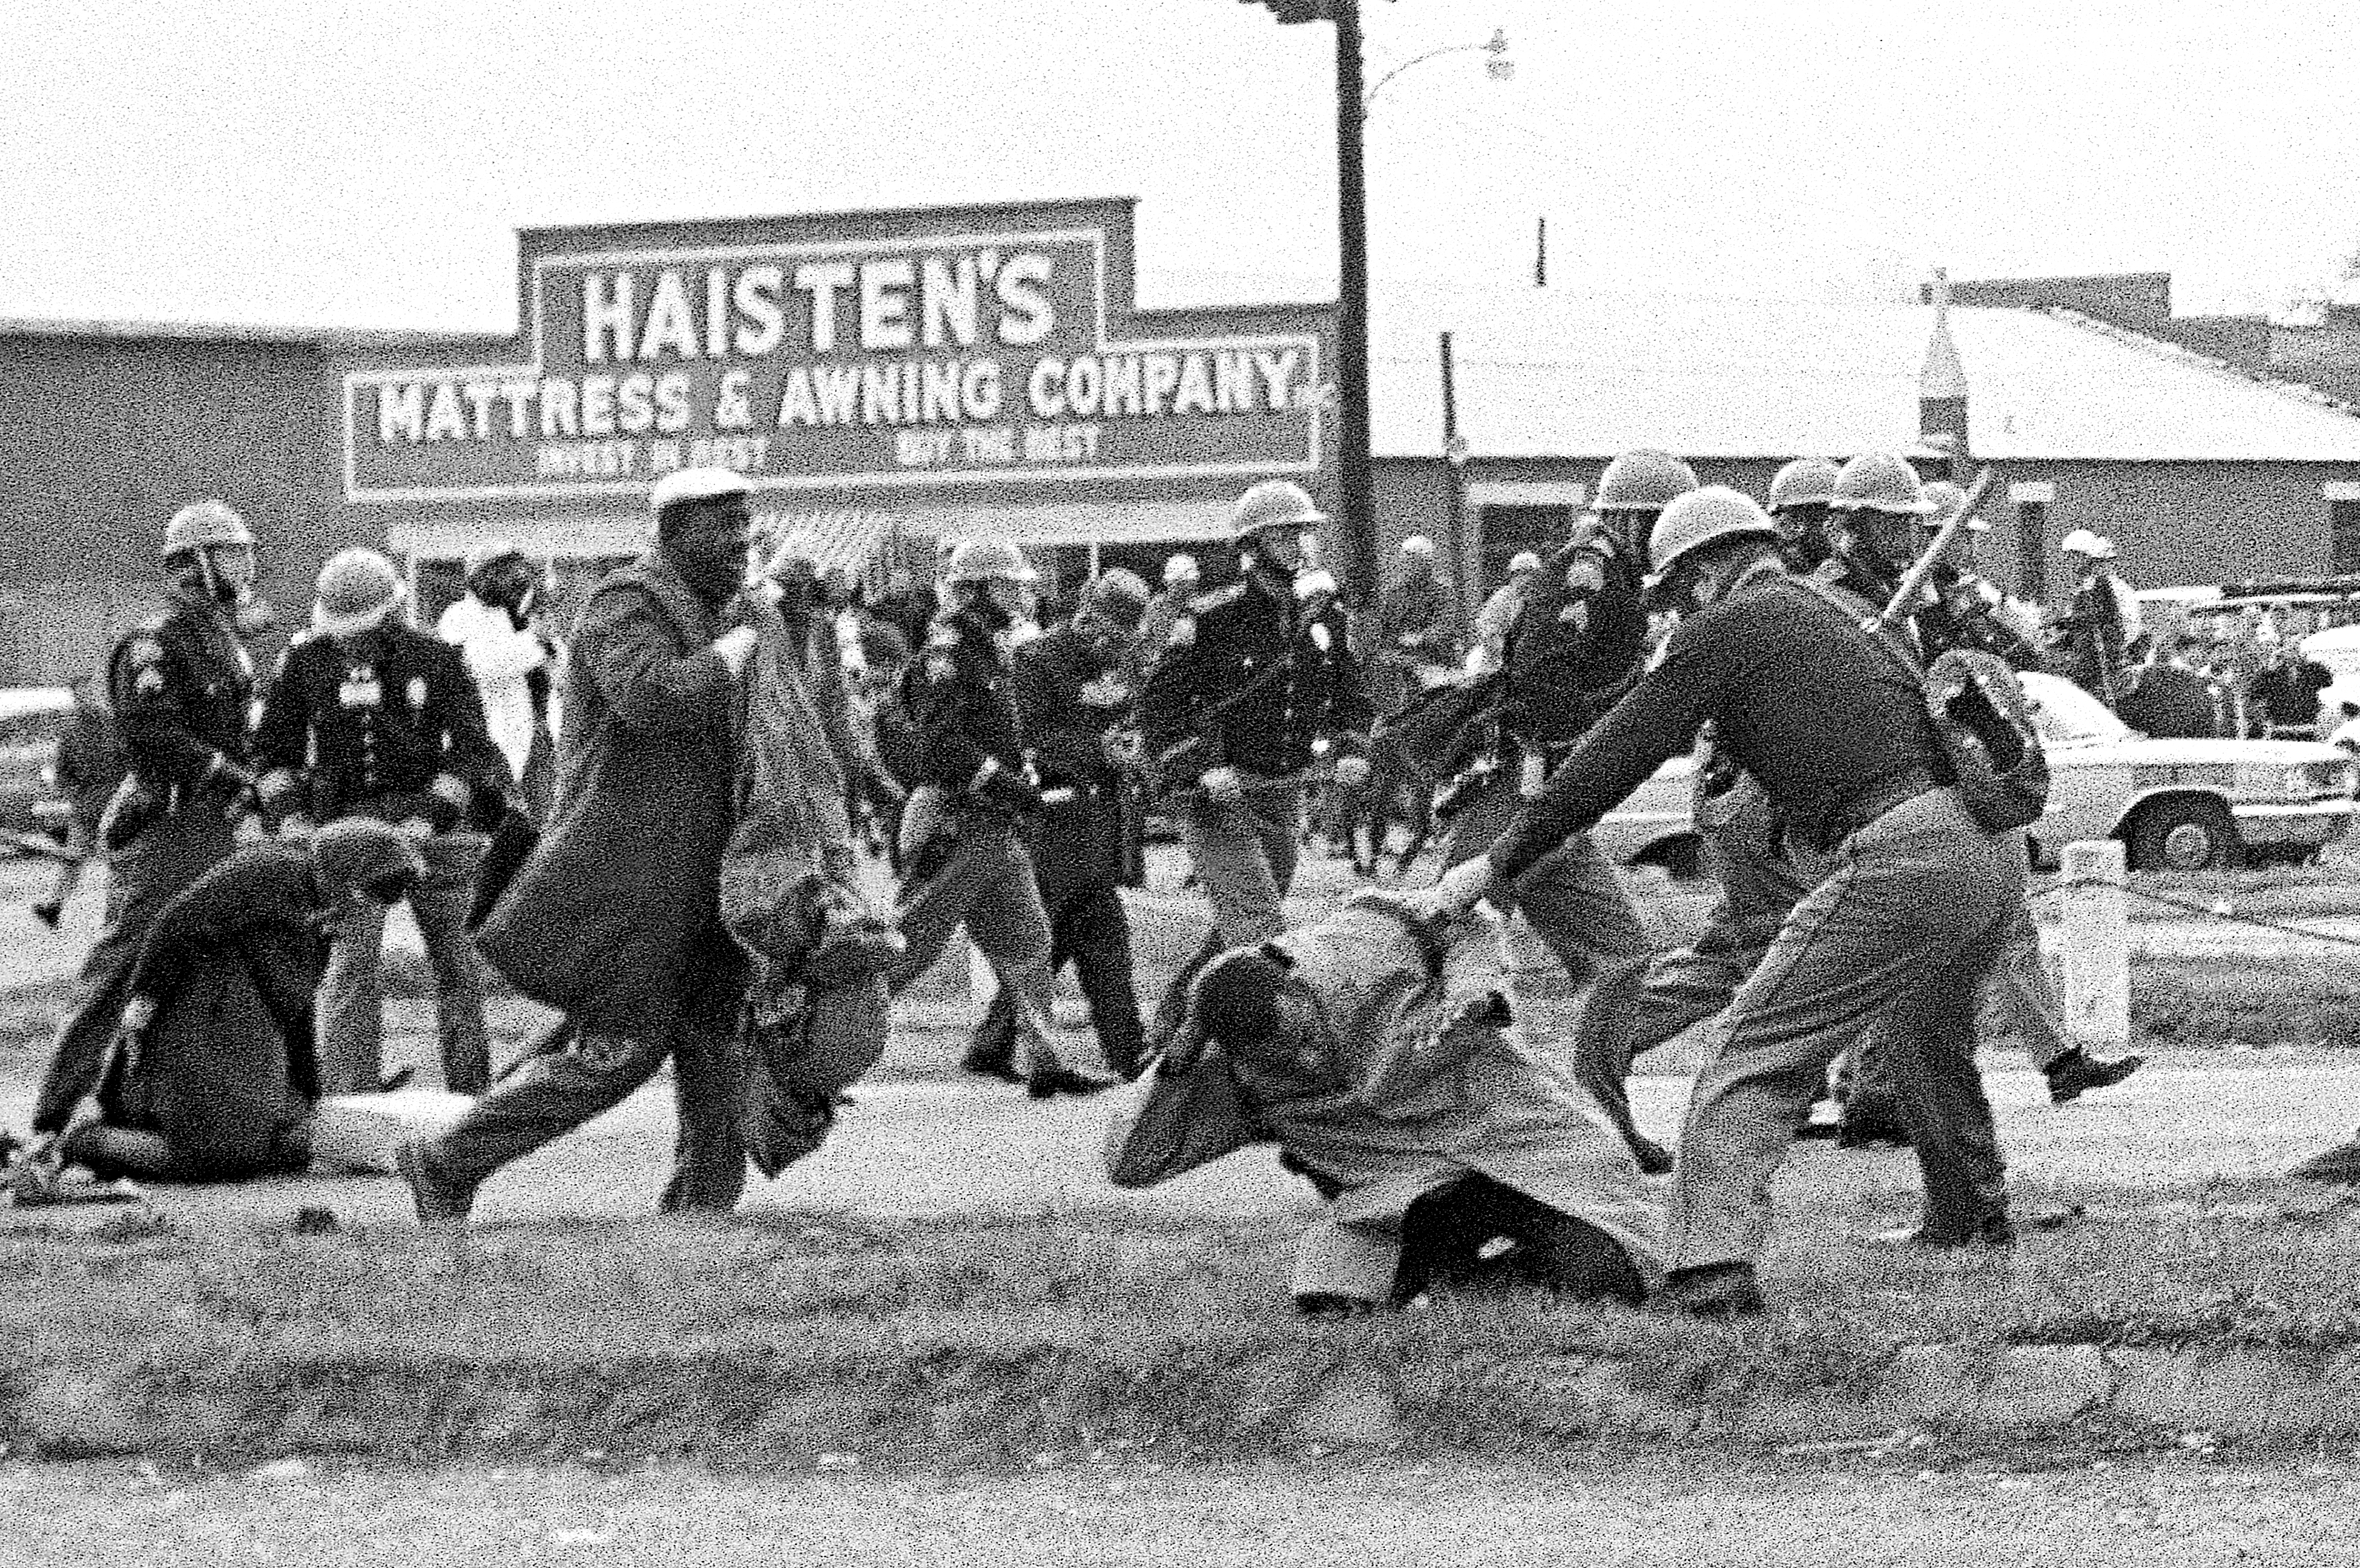 How the Images of John Lewis Being Beaten During 'Bloody Sunday' Went Viral